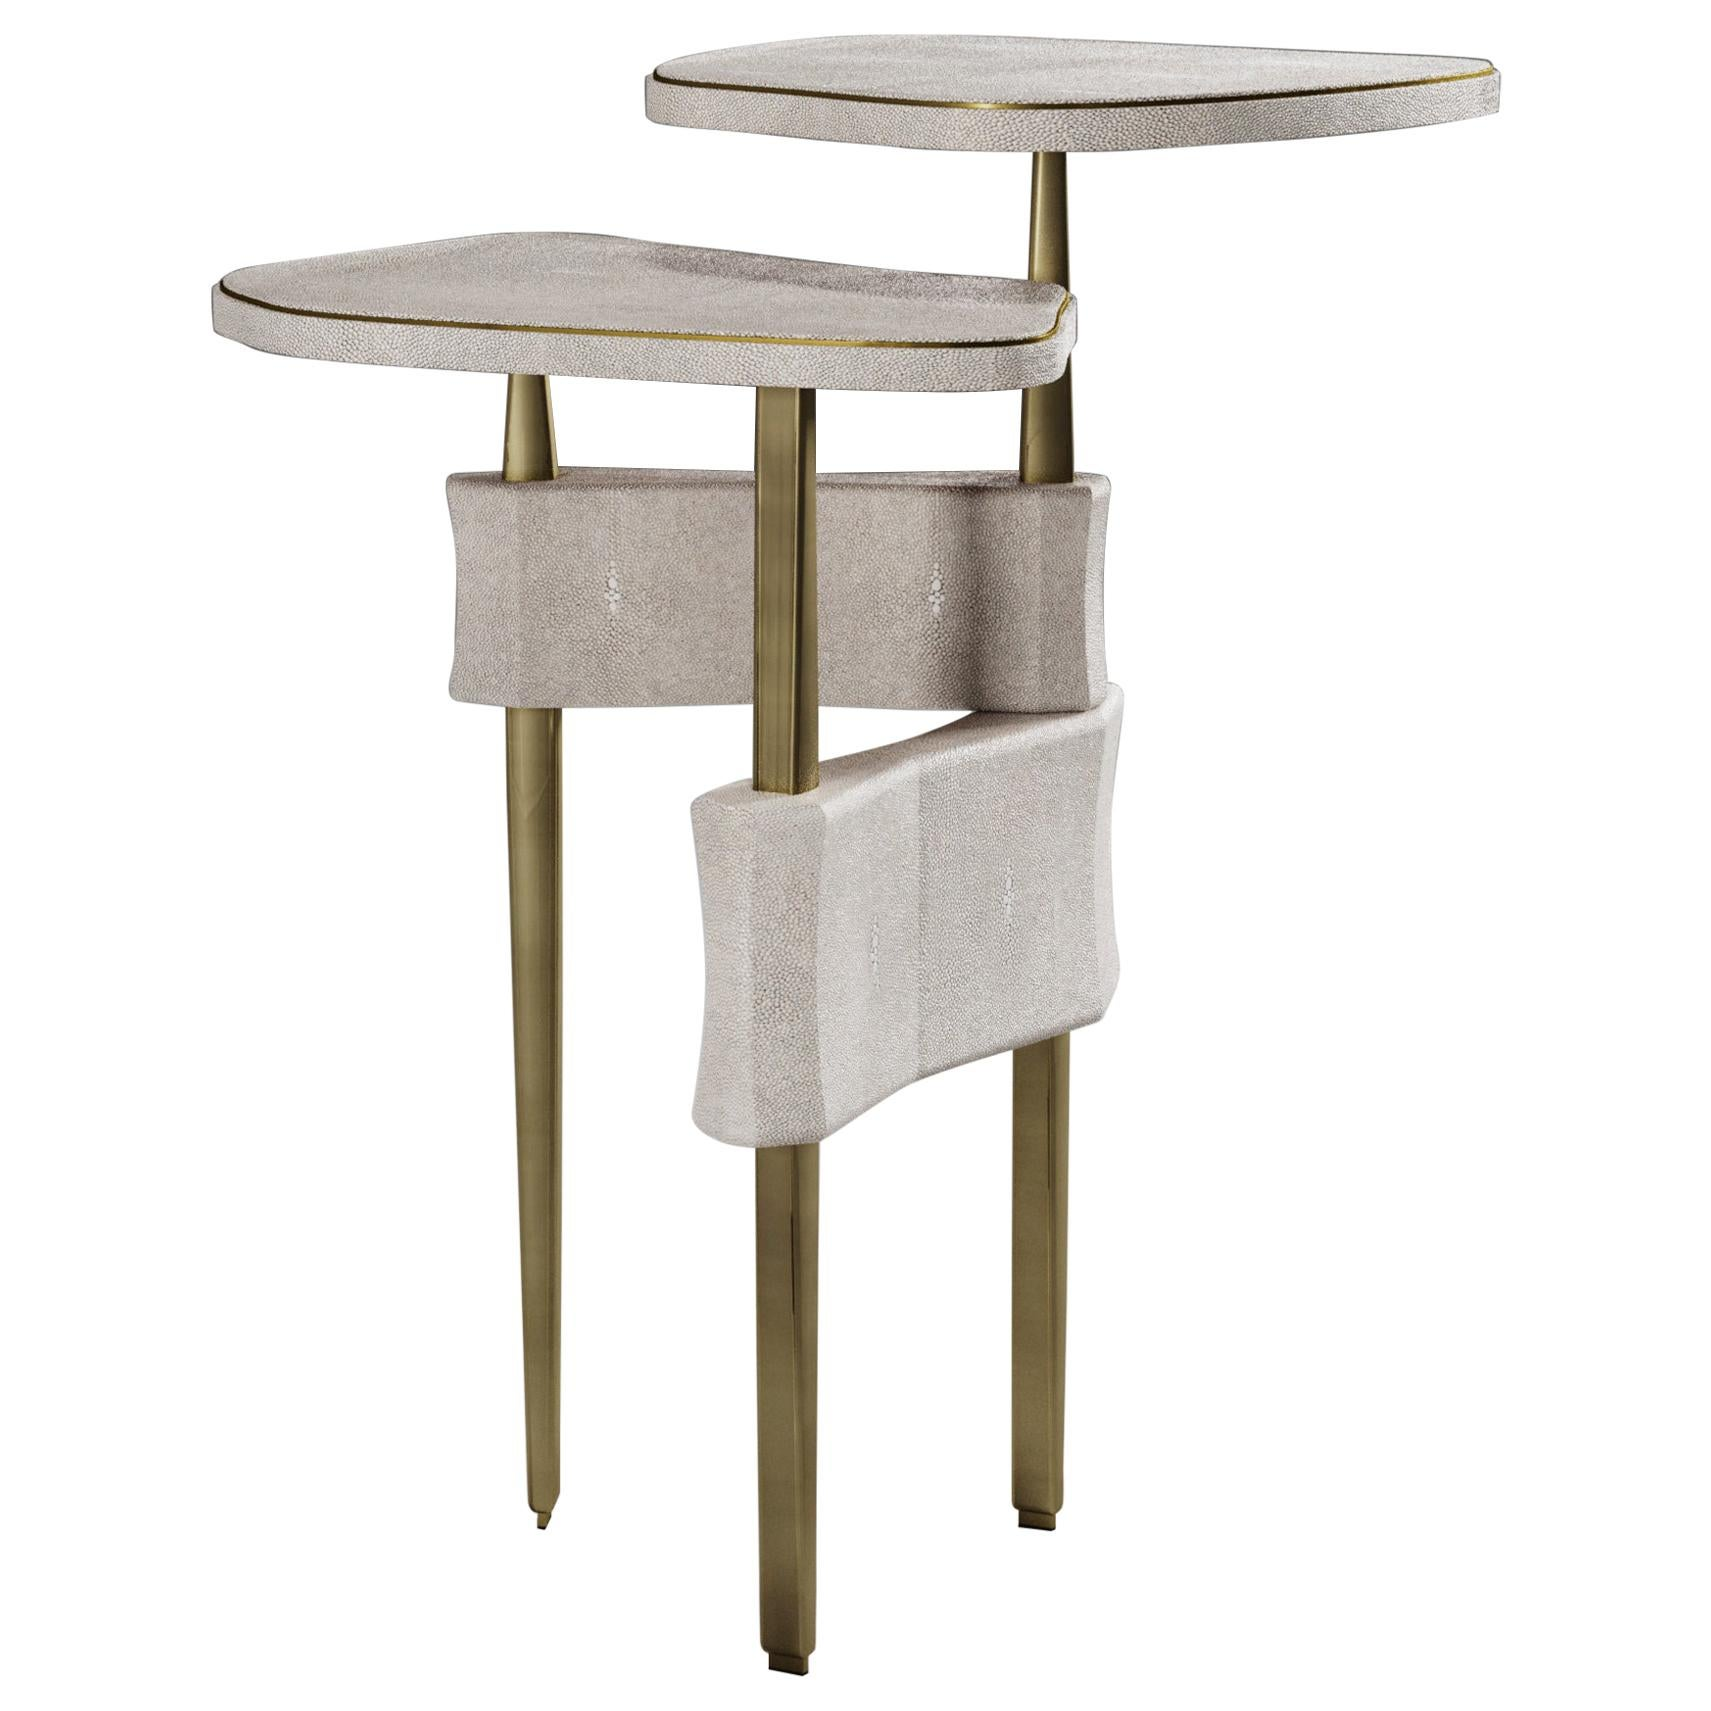 Side Table in Cream Shagreen and Bronze Patina Brass by Kifu Paris